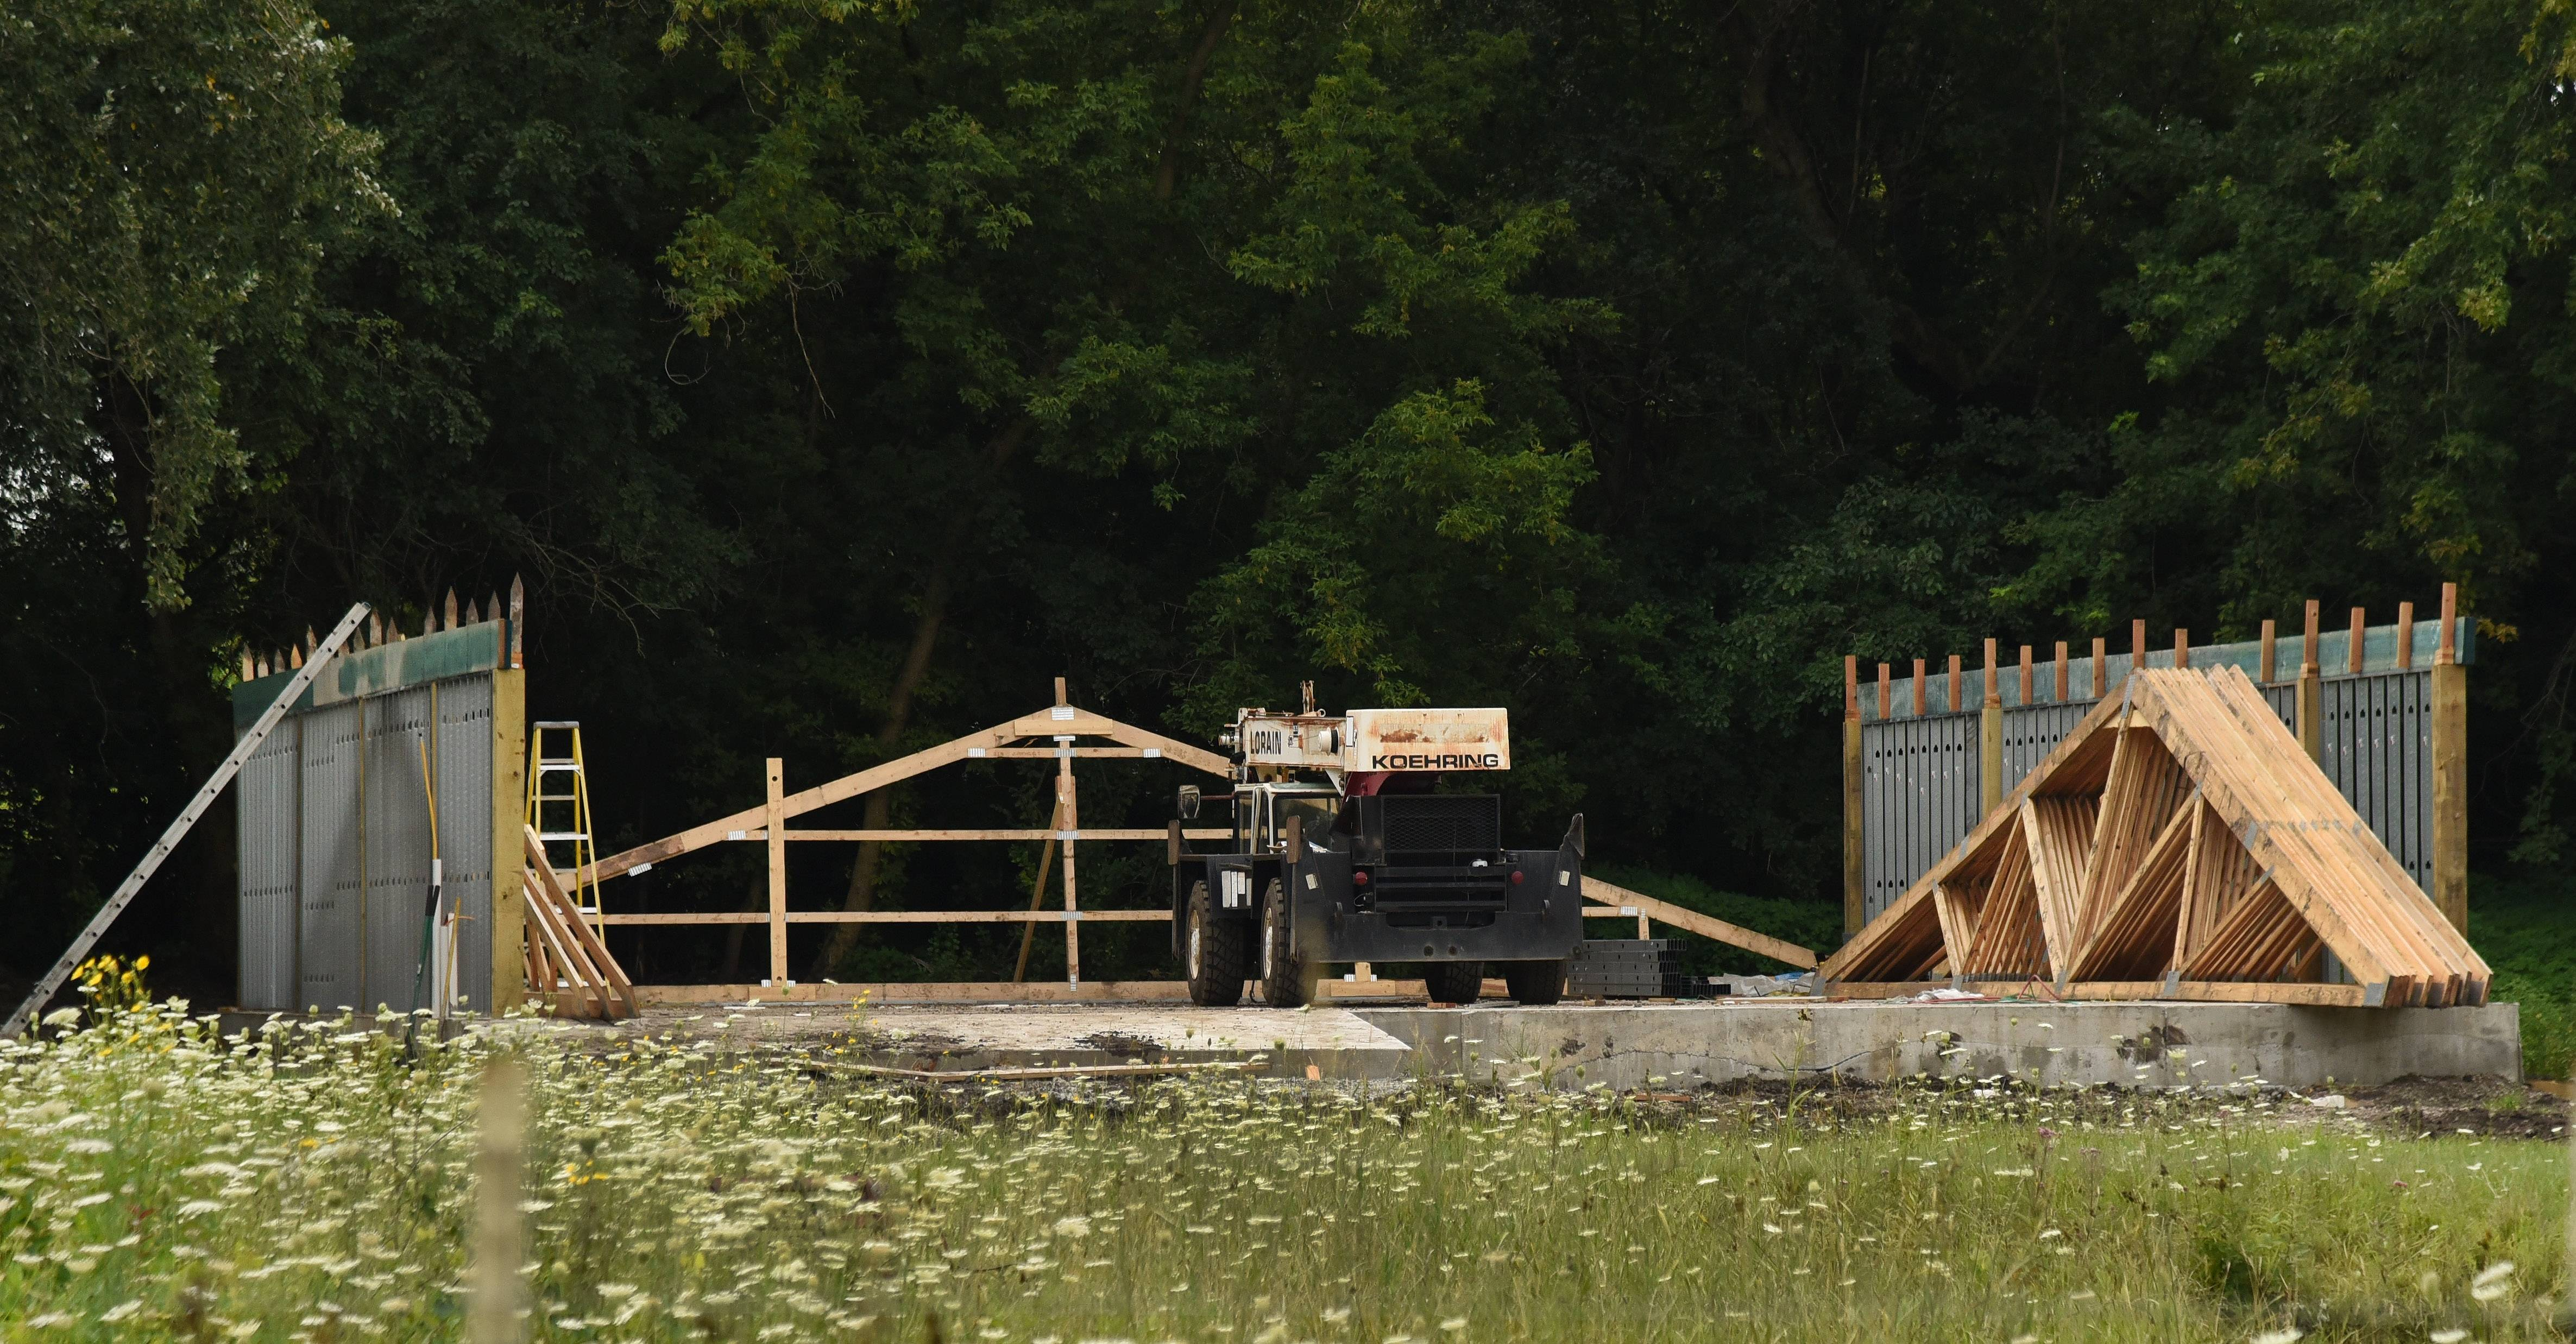 Barn construction for a proposed large-scale poultry farm for egg production began last summer on the southwest corner of Route 59 and Scott Road in North Barrington. Village President Albert Pino says the land recently was forcibly annexed into his community.